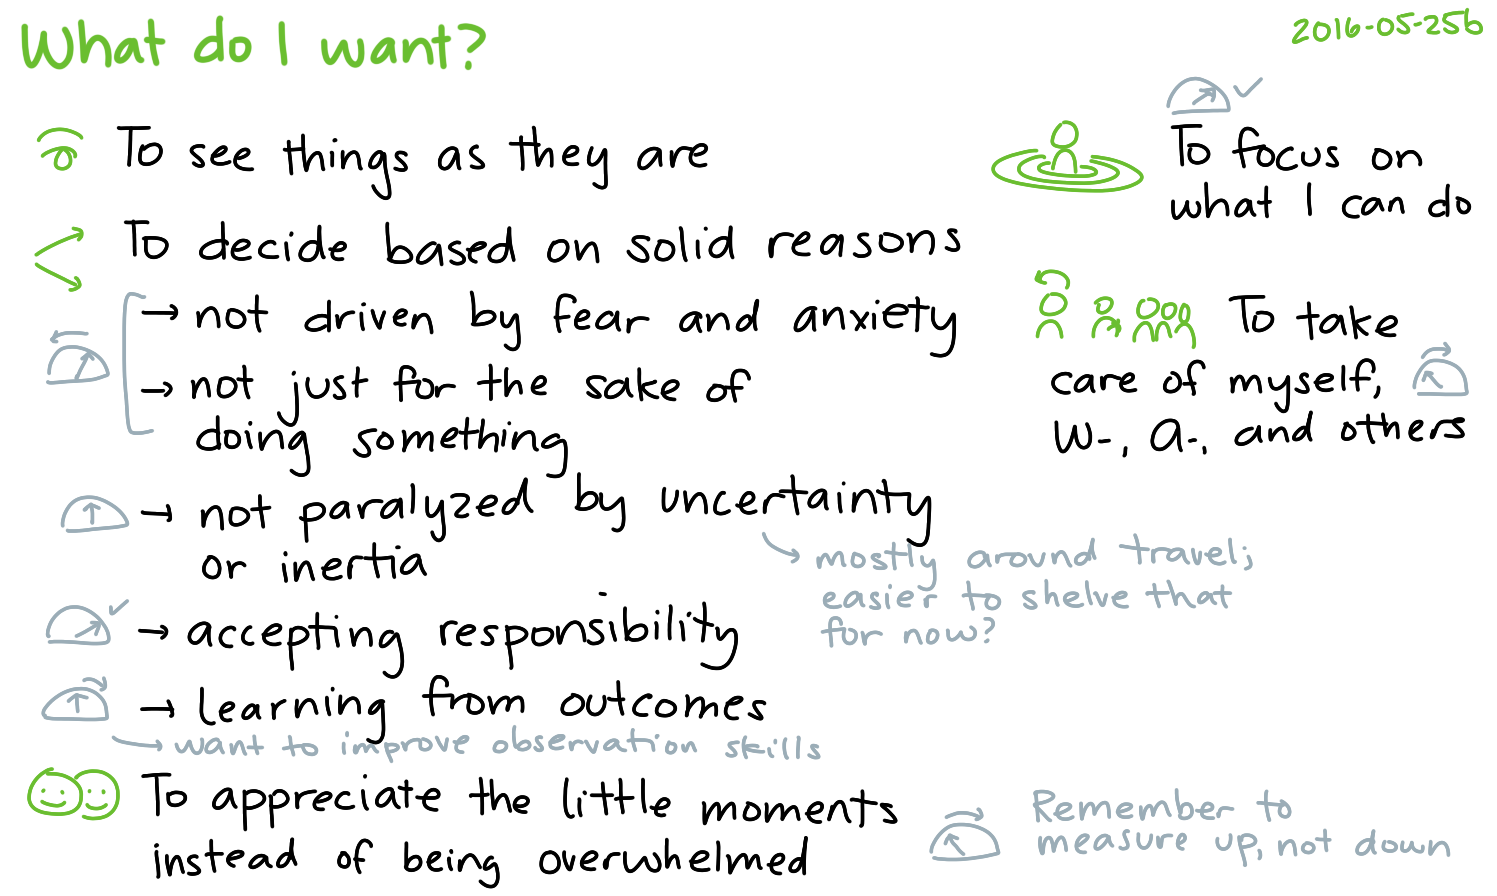 2016-05-25b What do I want -- index card #philosophy #parenting.png